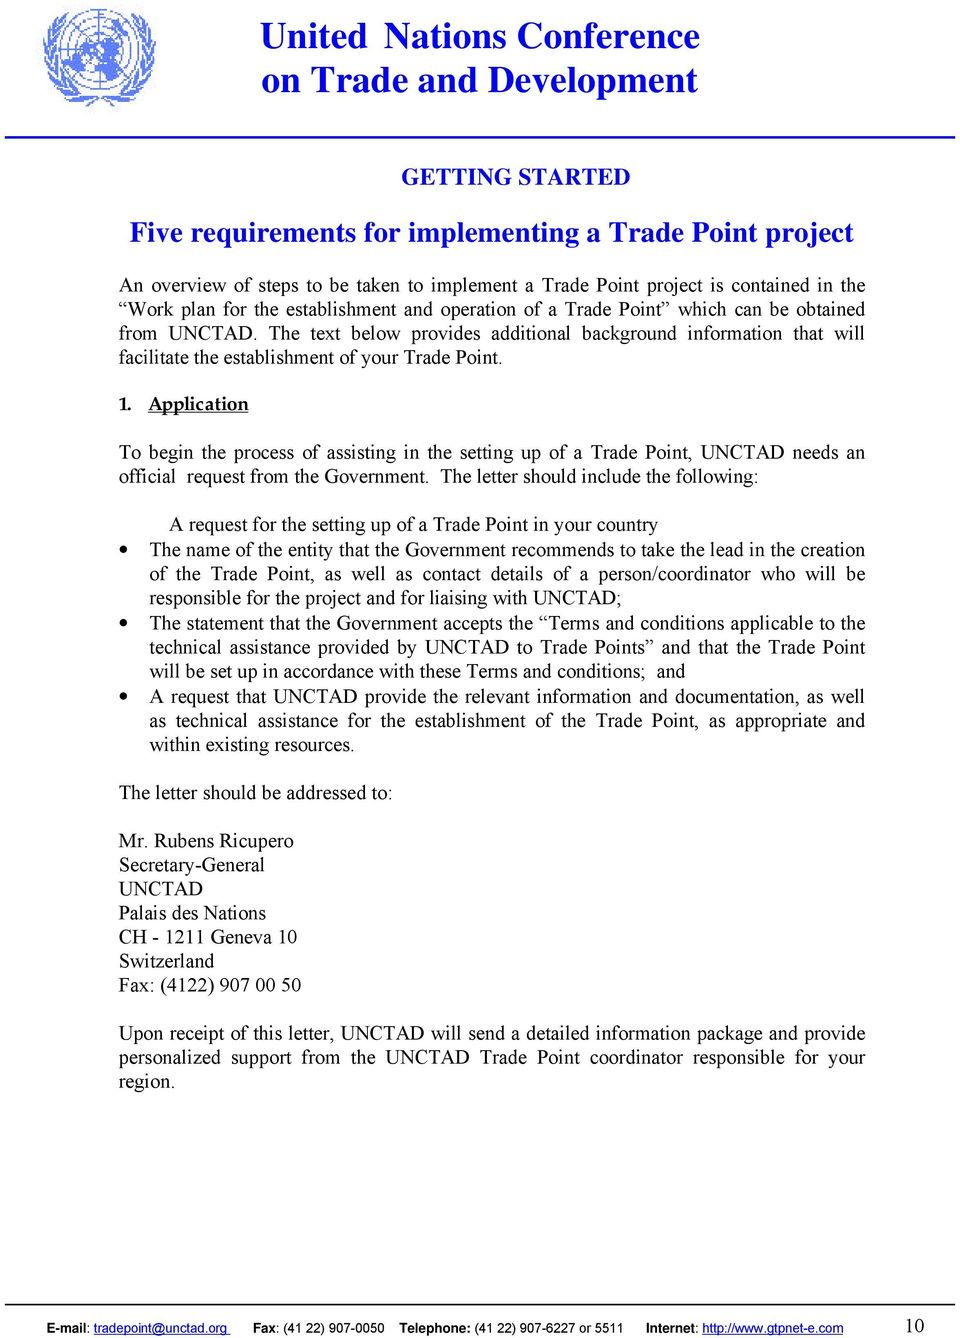 Application To begin the process of assisting in the setting up of a Trade Point, UNCTAD needs an official request from the Government.